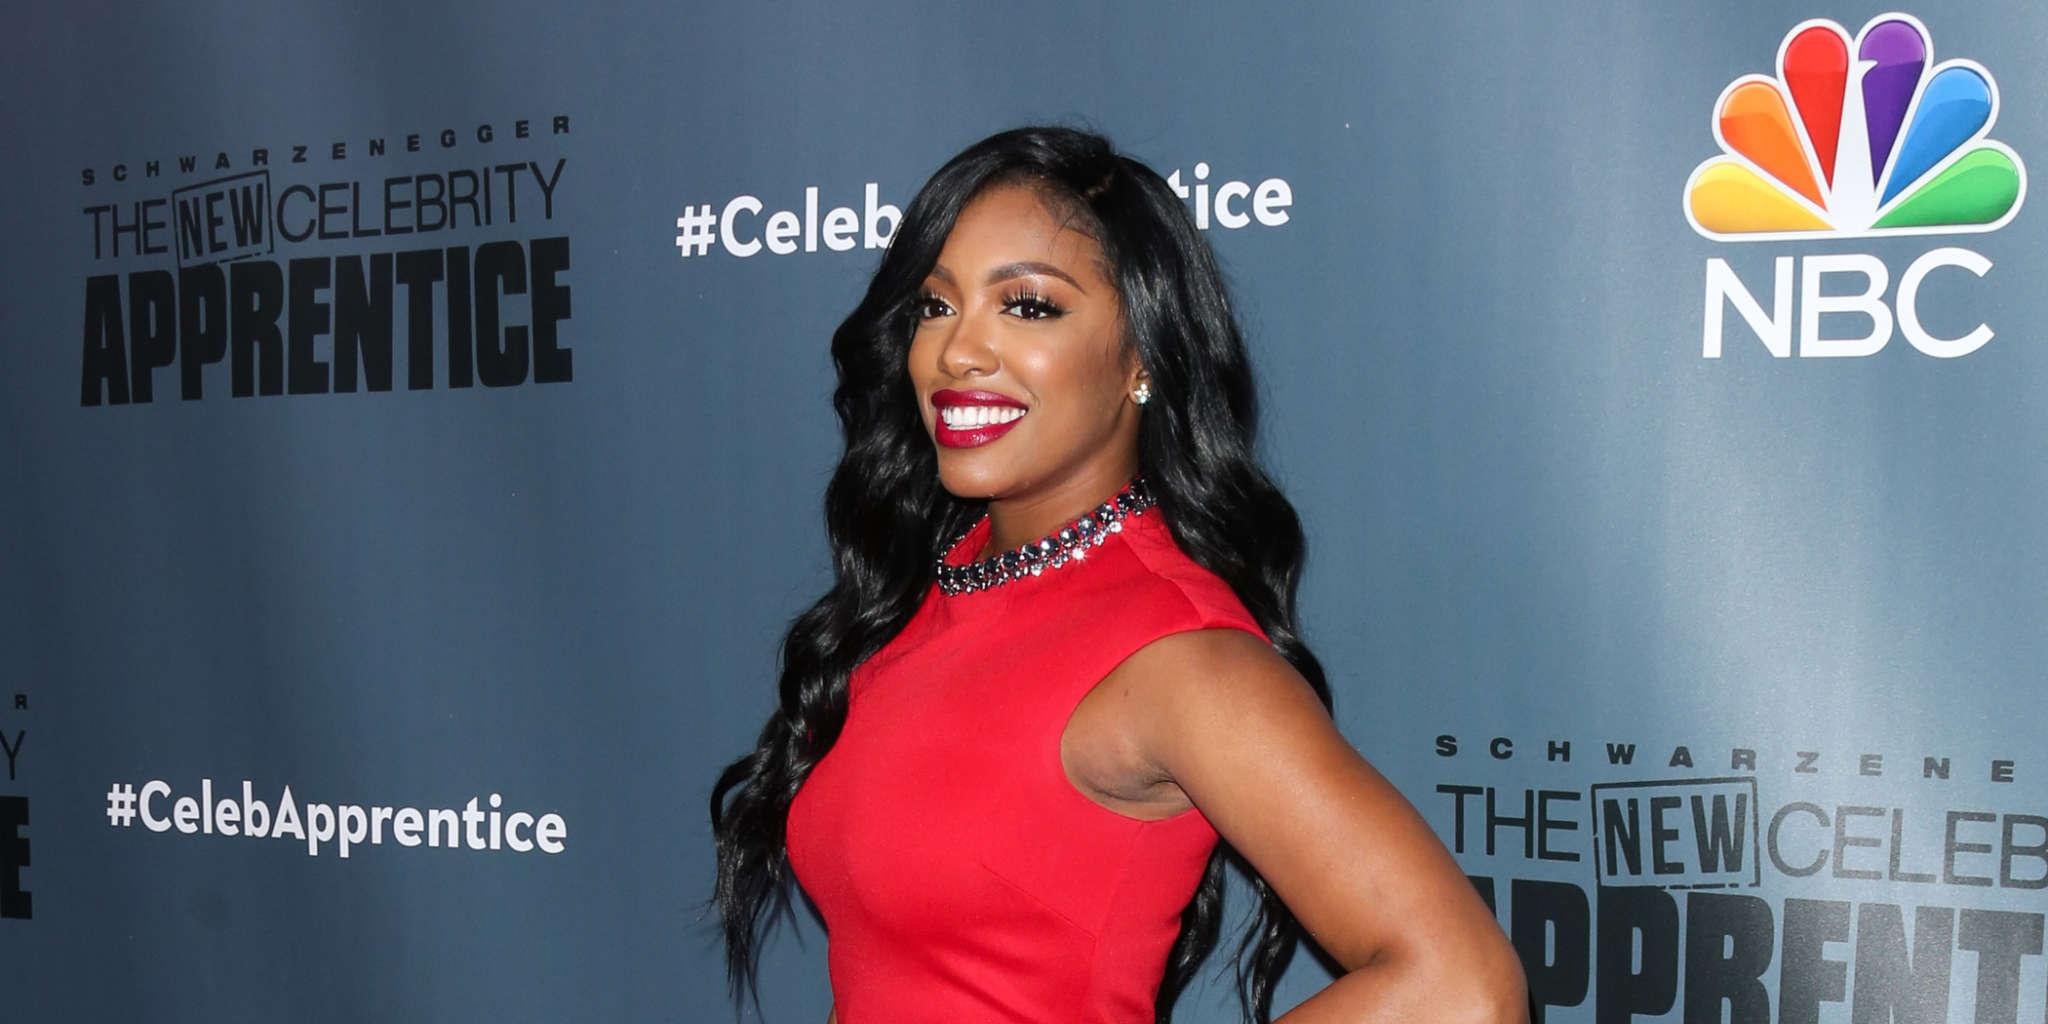 Porsha Williams' Fans Are Freaking Out When They See Her On A Hospital Bed - Find Out What Happened!